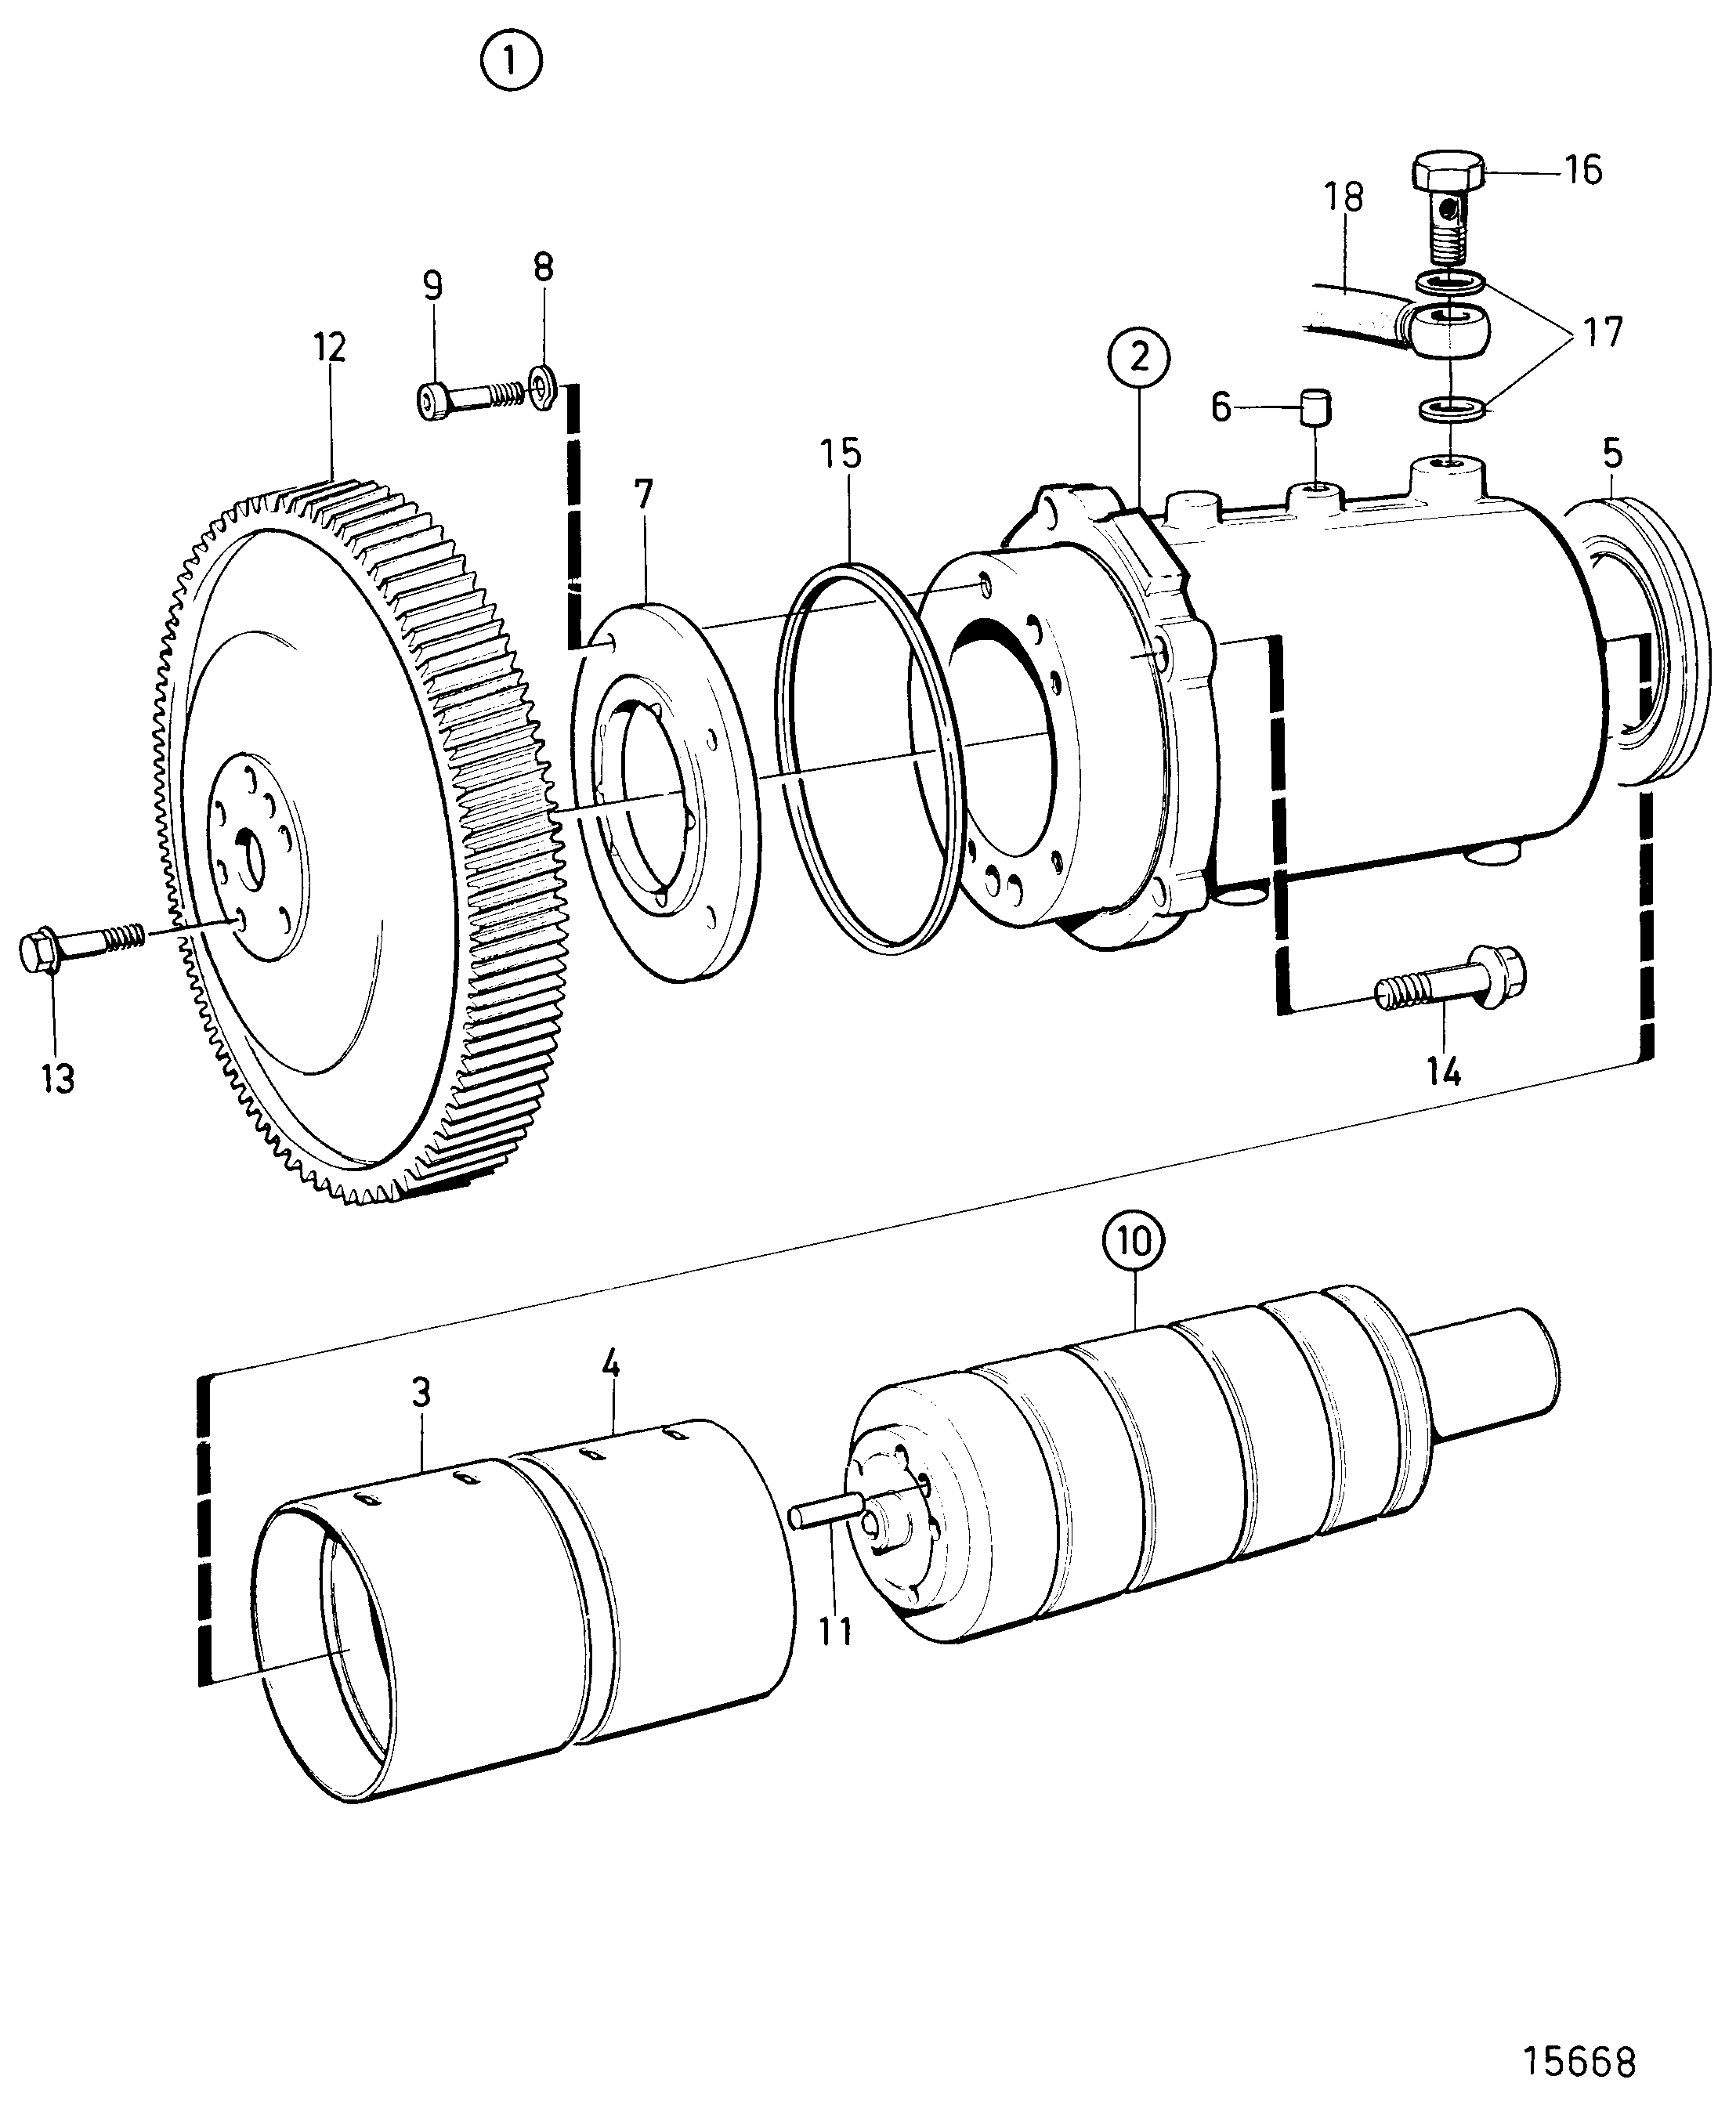 2216x2696 Fuel Injection Timing Device